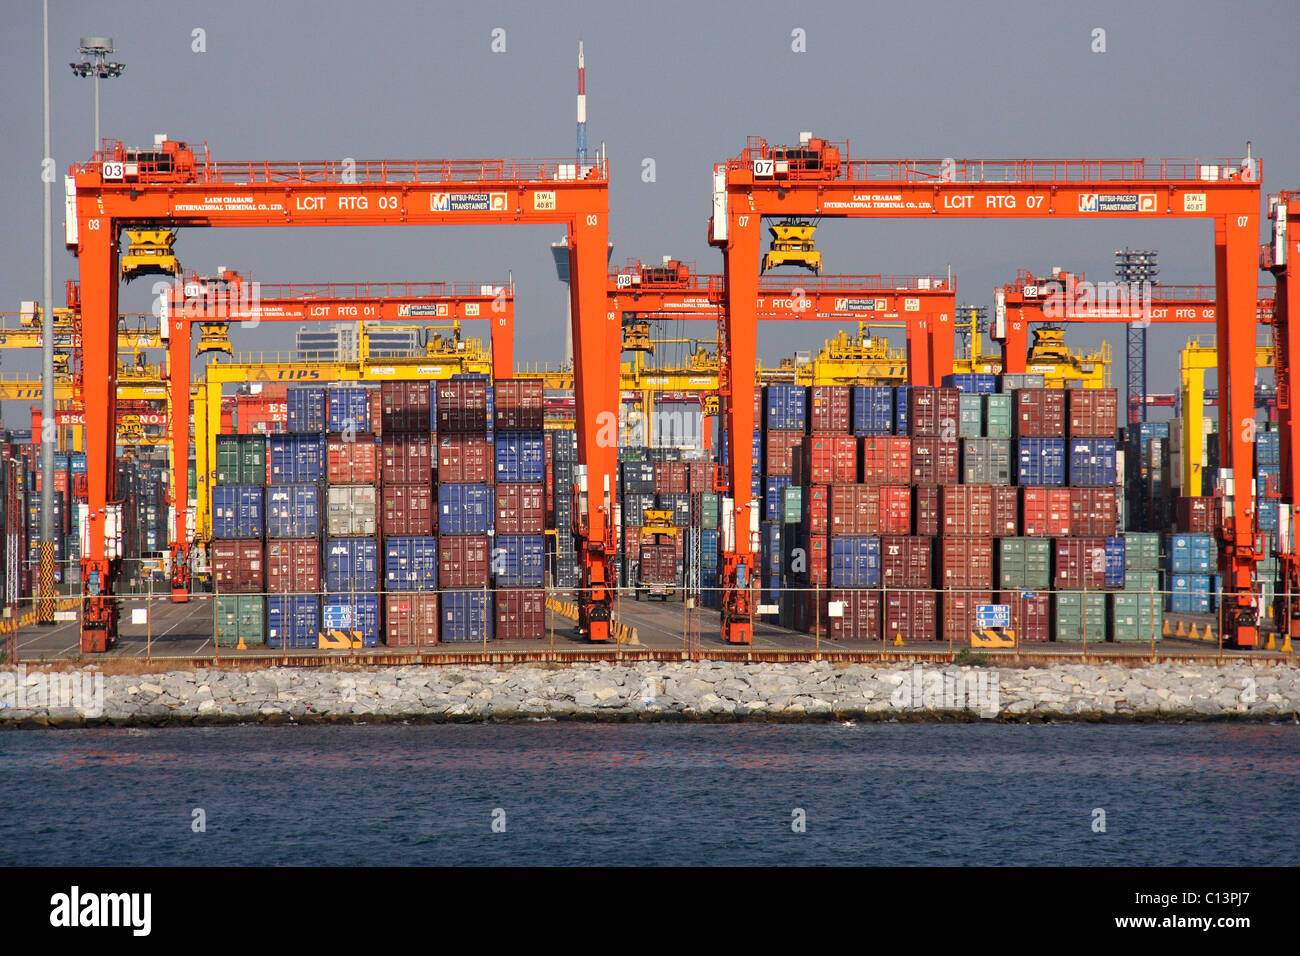 a stack of shipping cargo containers and cranes in a container terminal Stock Photo